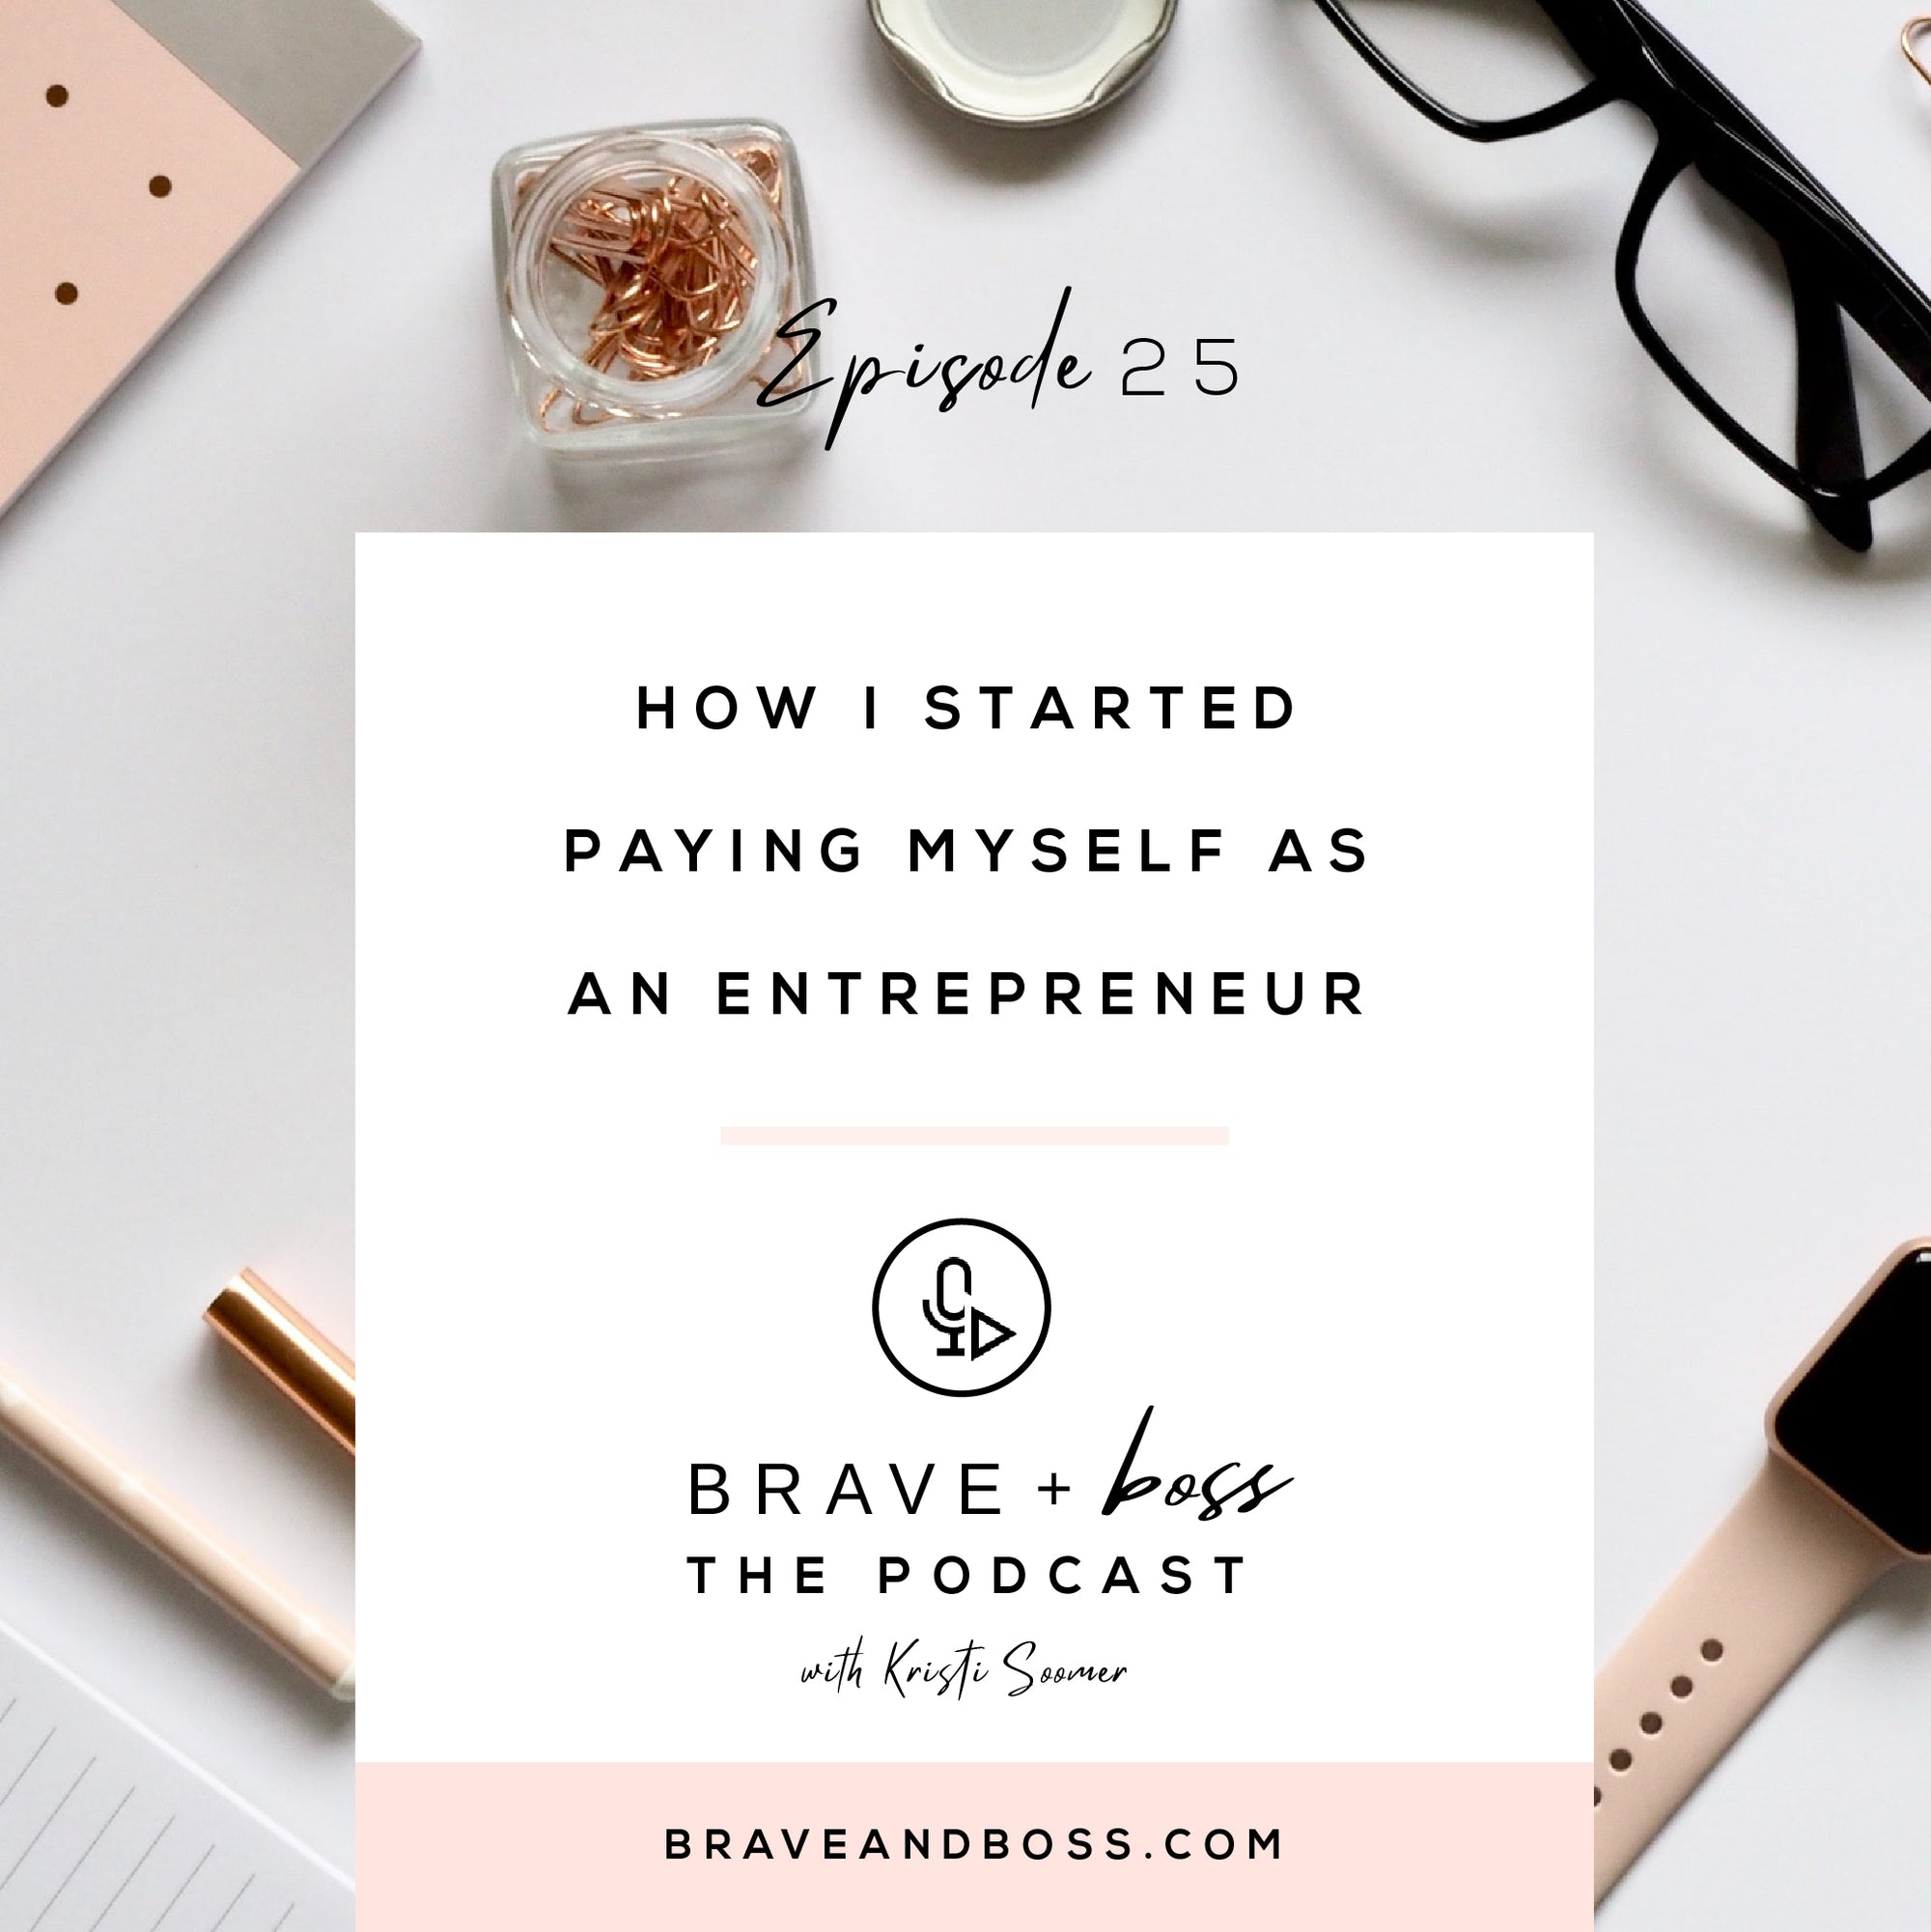 How I Started Paying Myself as an Entrepreneur